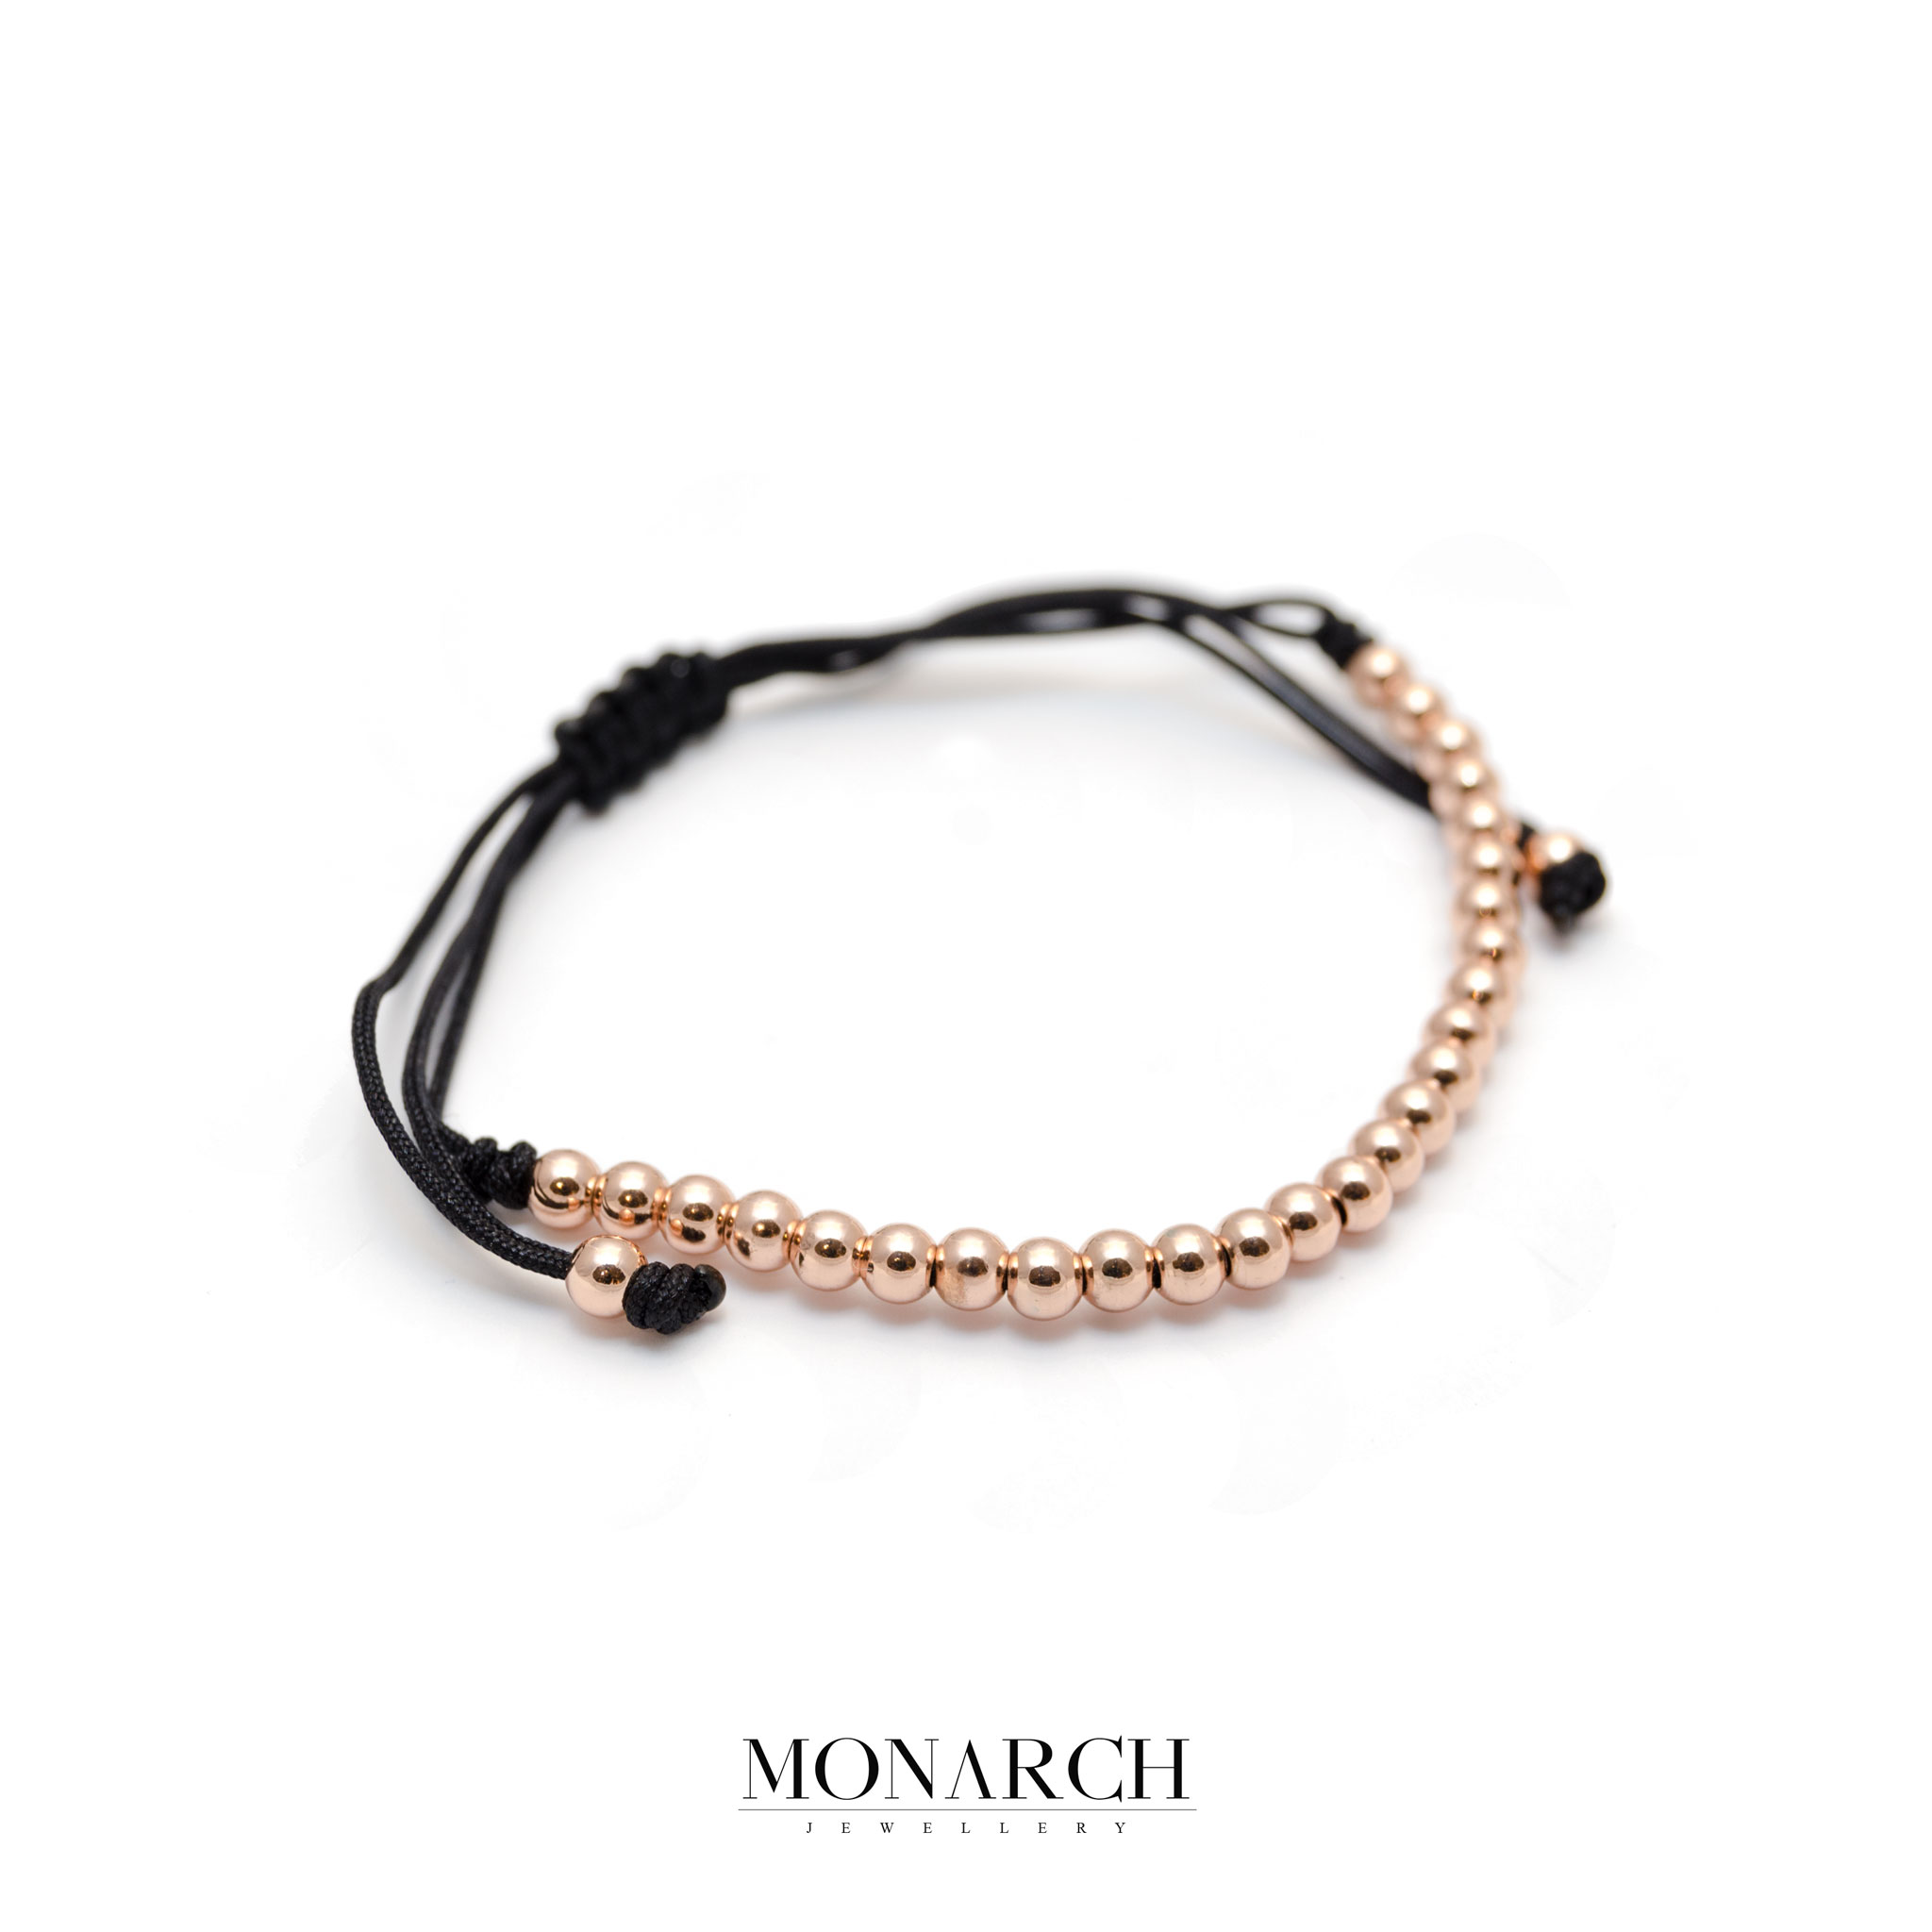 Monarch Jewellery Gold Rose Spectra Zircon Macrame Bracelet